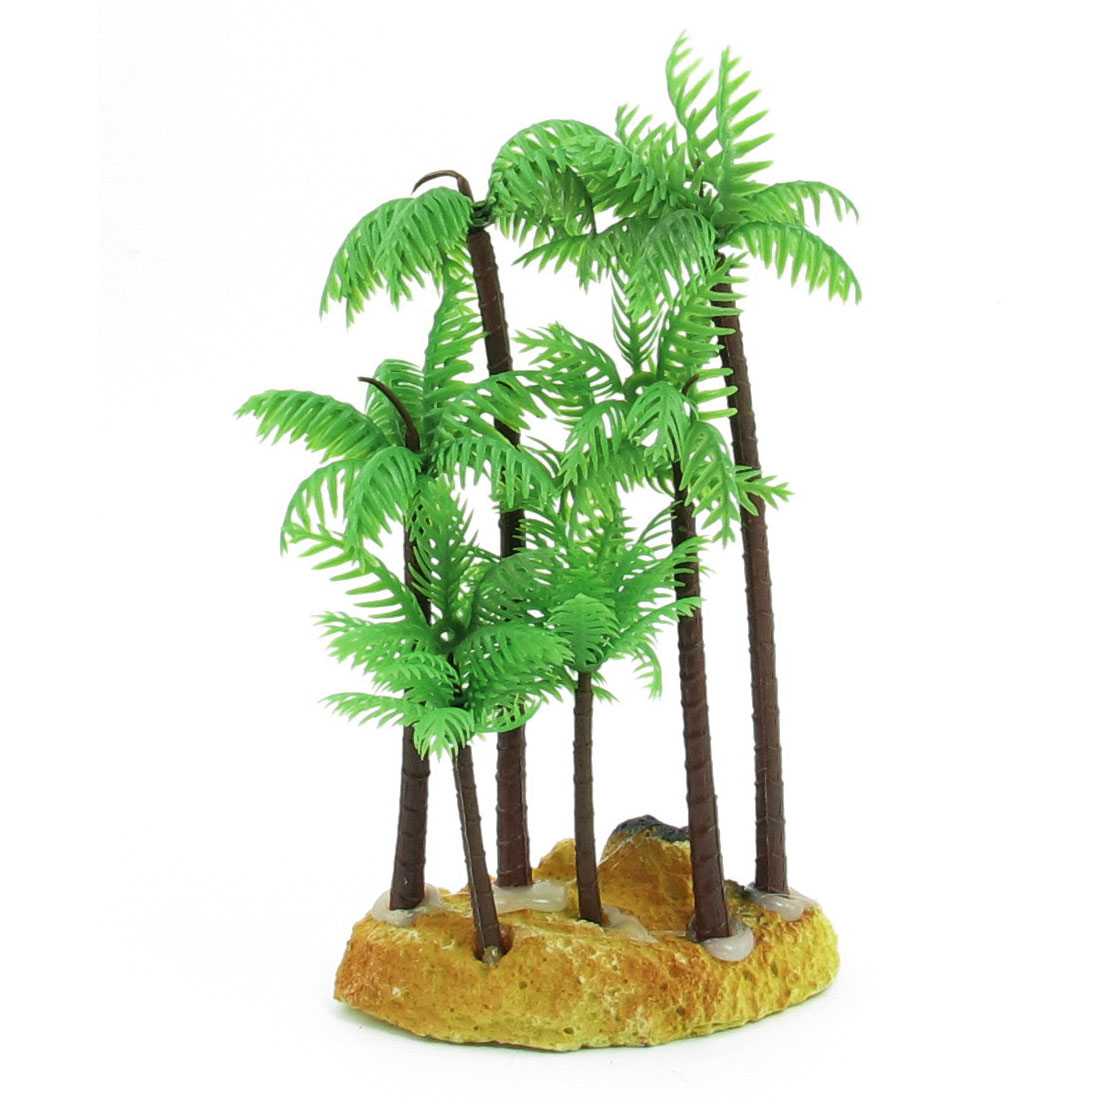 14.5cm Height Aquarium Aquascaping Green Plastic Artificial Aquatic Coconut Palm